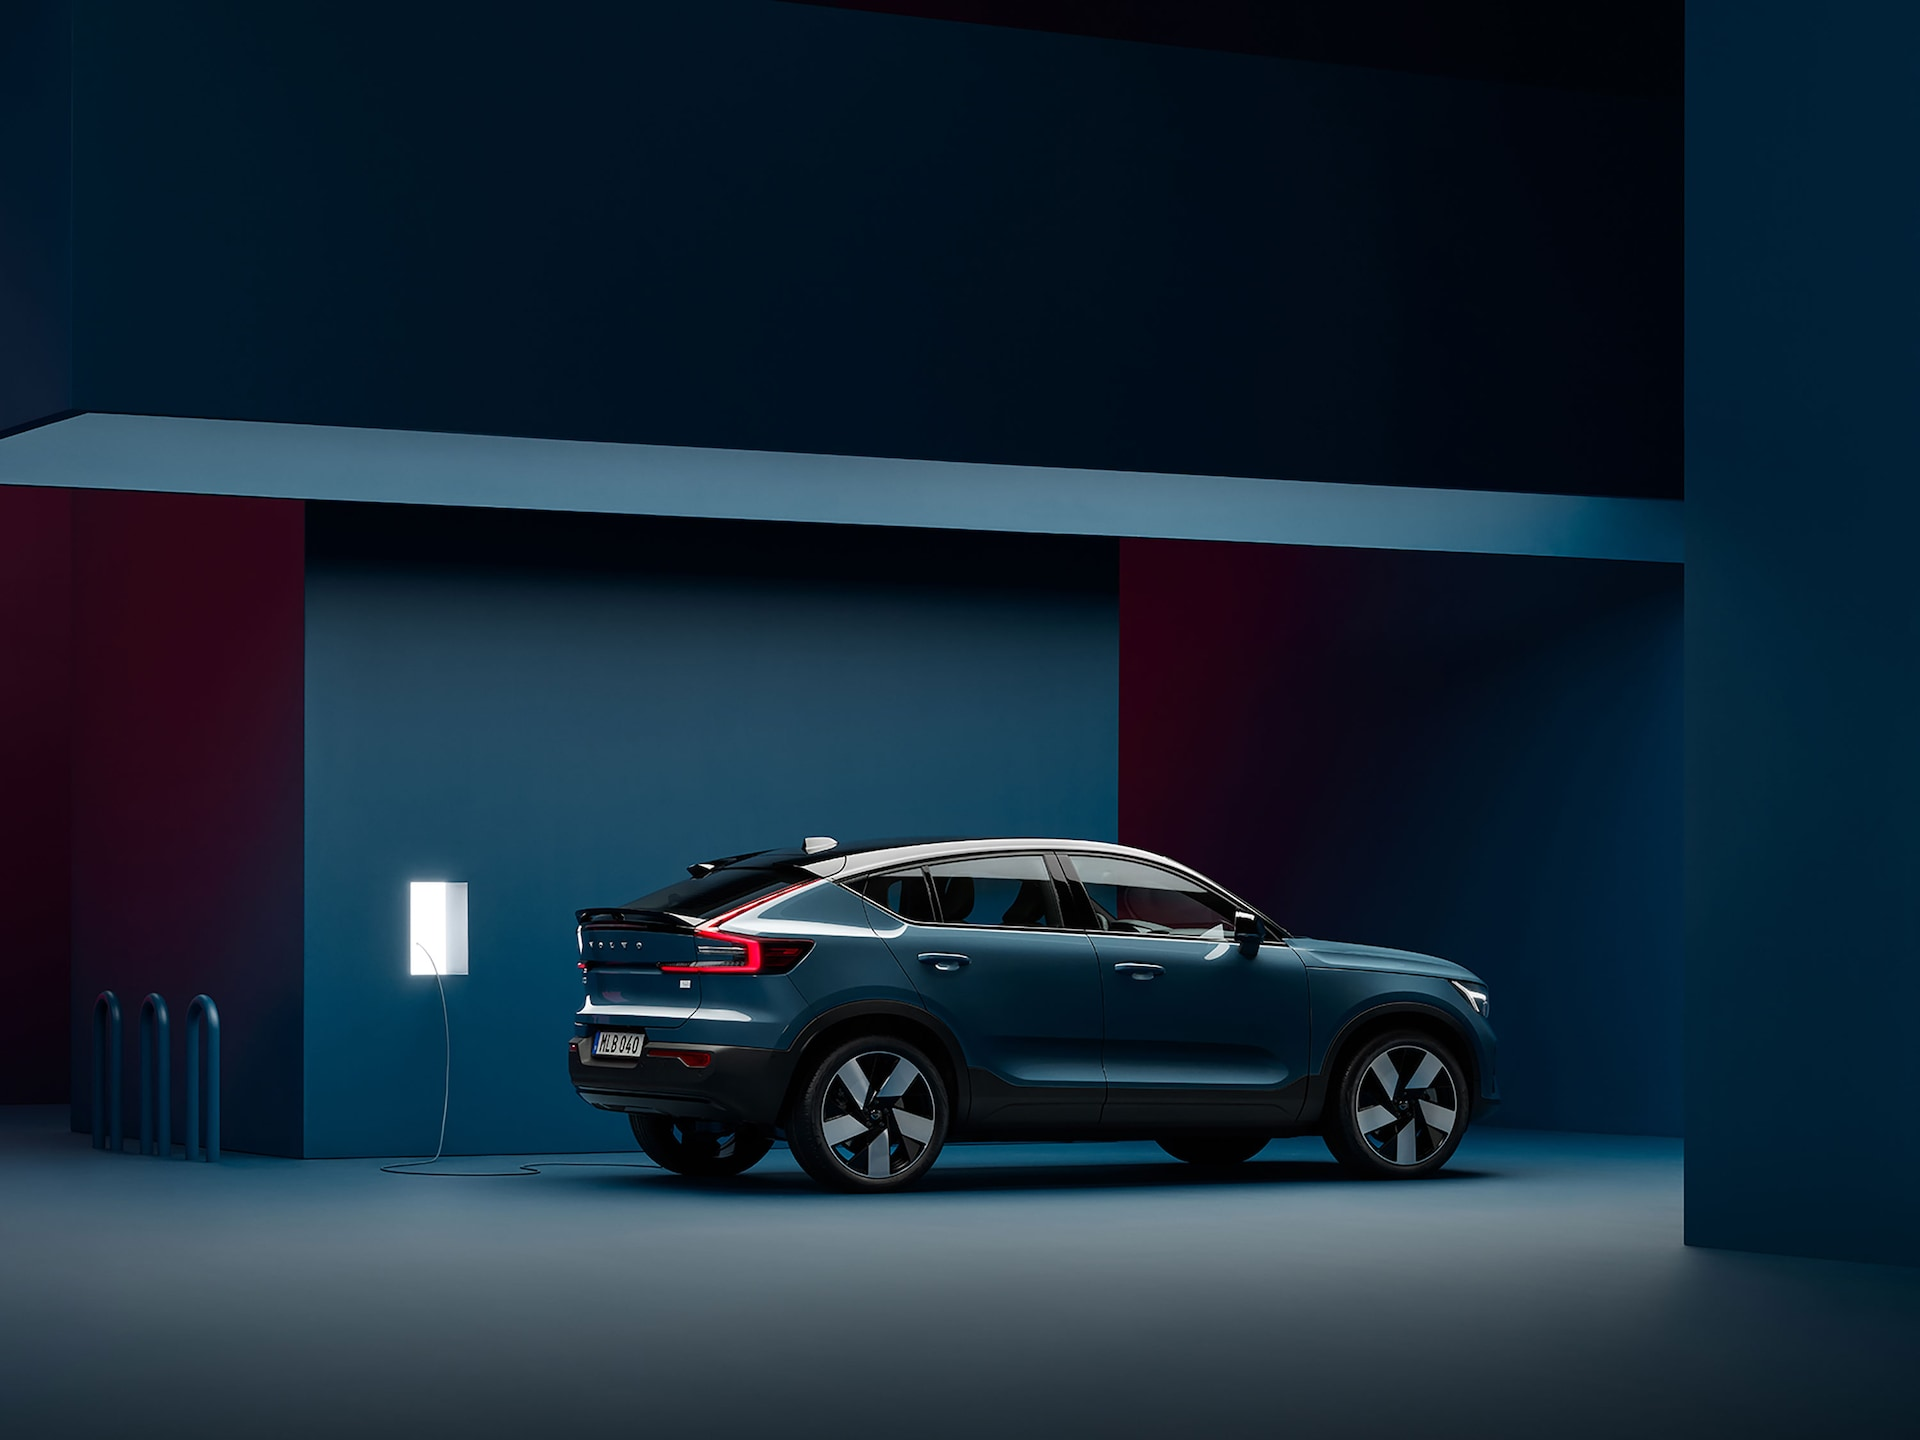 A Volvo C40 Recharge is parked in a dark blue room next to a charging station.